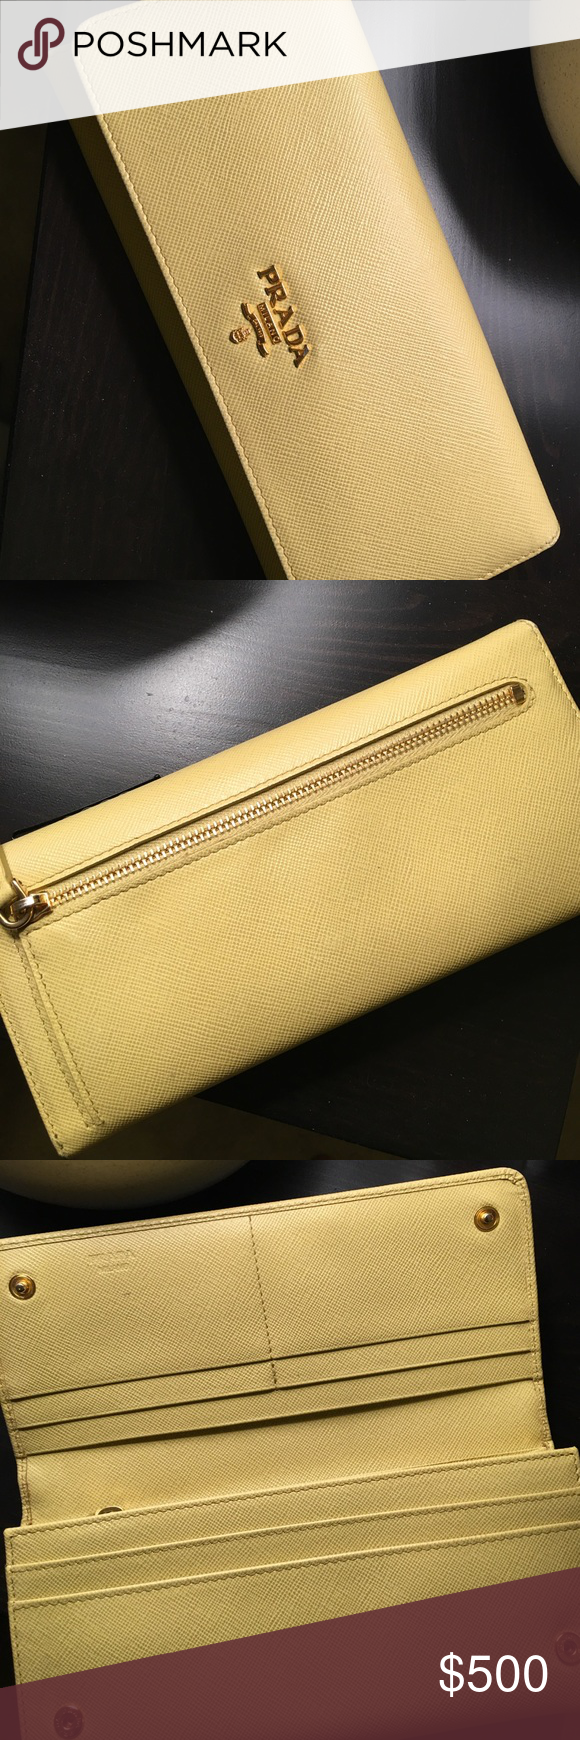 75705501ada74a ... saffiano leather wallet w authenticity card slim pale yellow leather  prada snap enclosure wallet promo code prada yellow zippy wallet  authentickelly ...